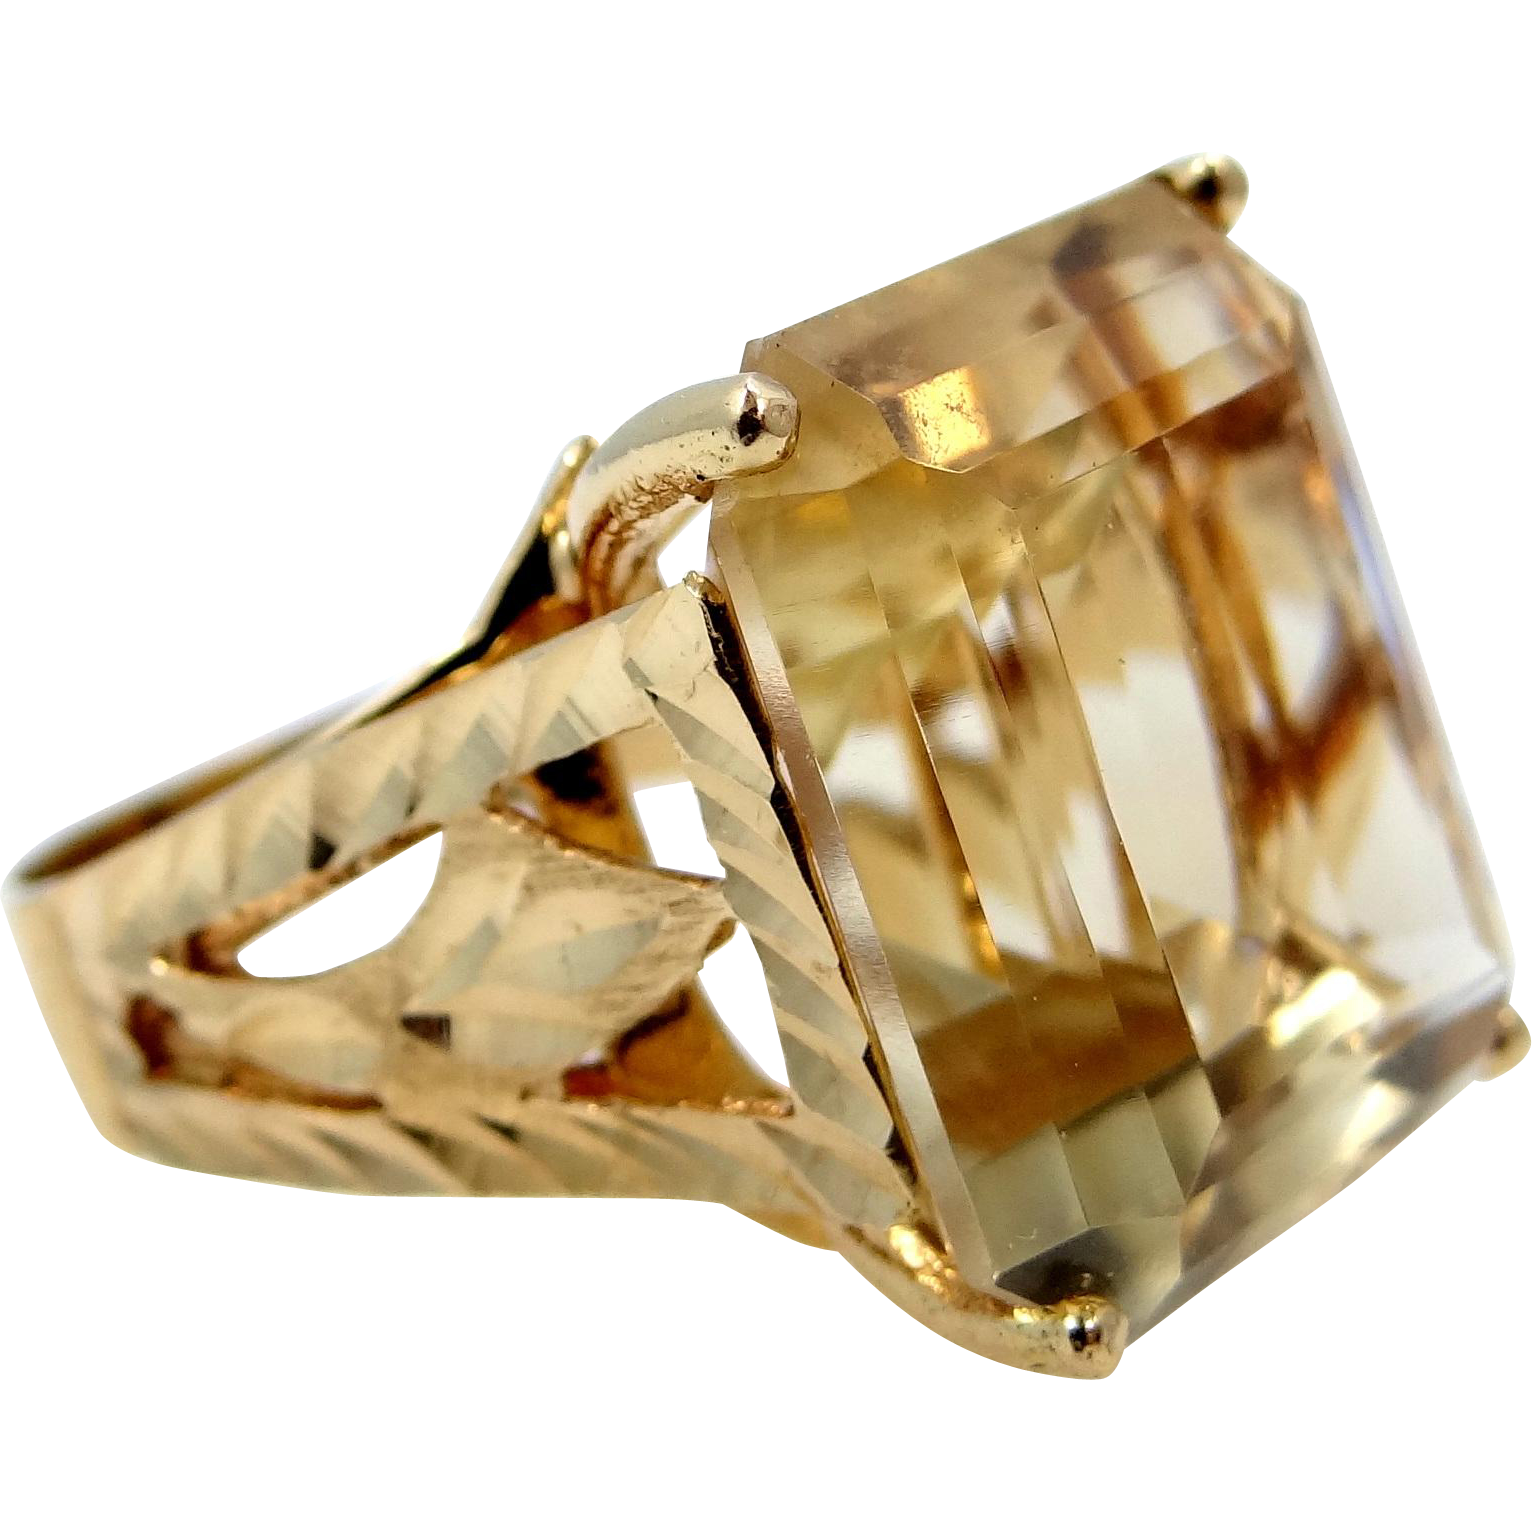 18k Gold 15 Carat Citrine Solitaire Lady's Ring